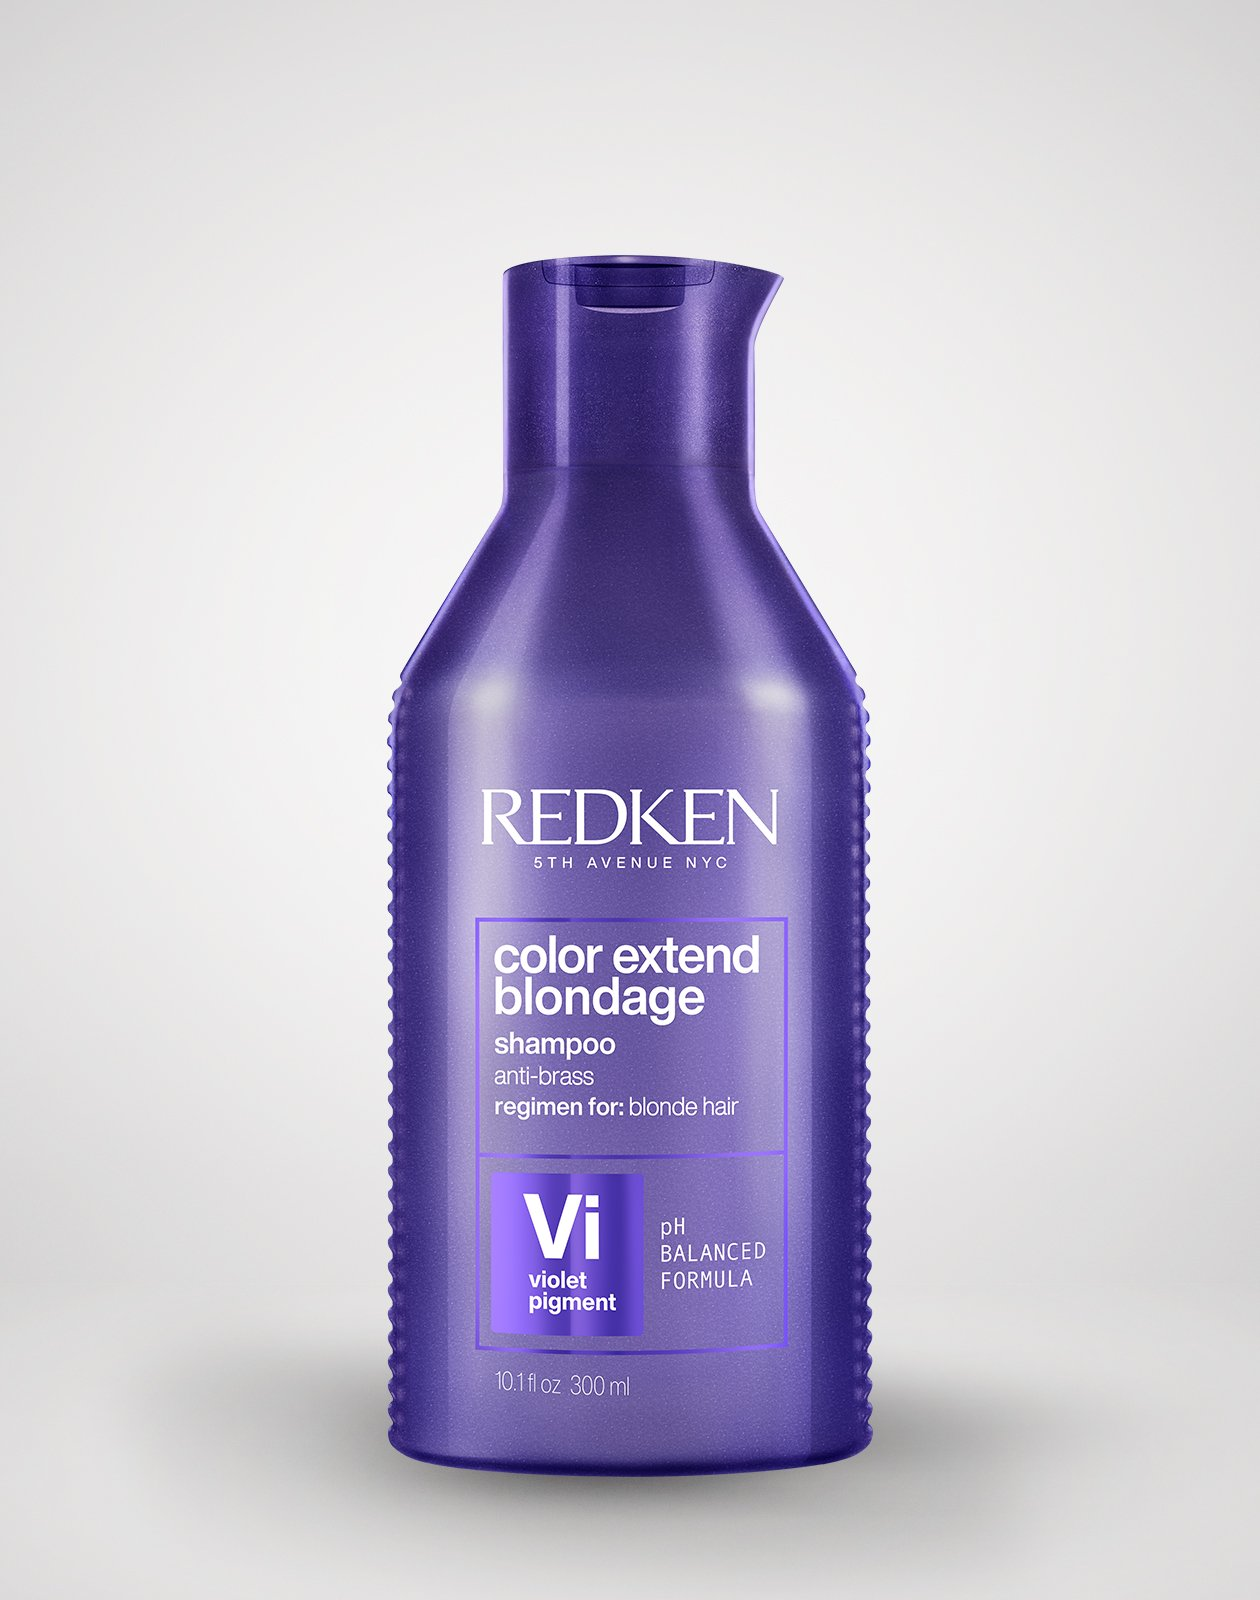 Redken color extend blondage shampoo for blonde hair